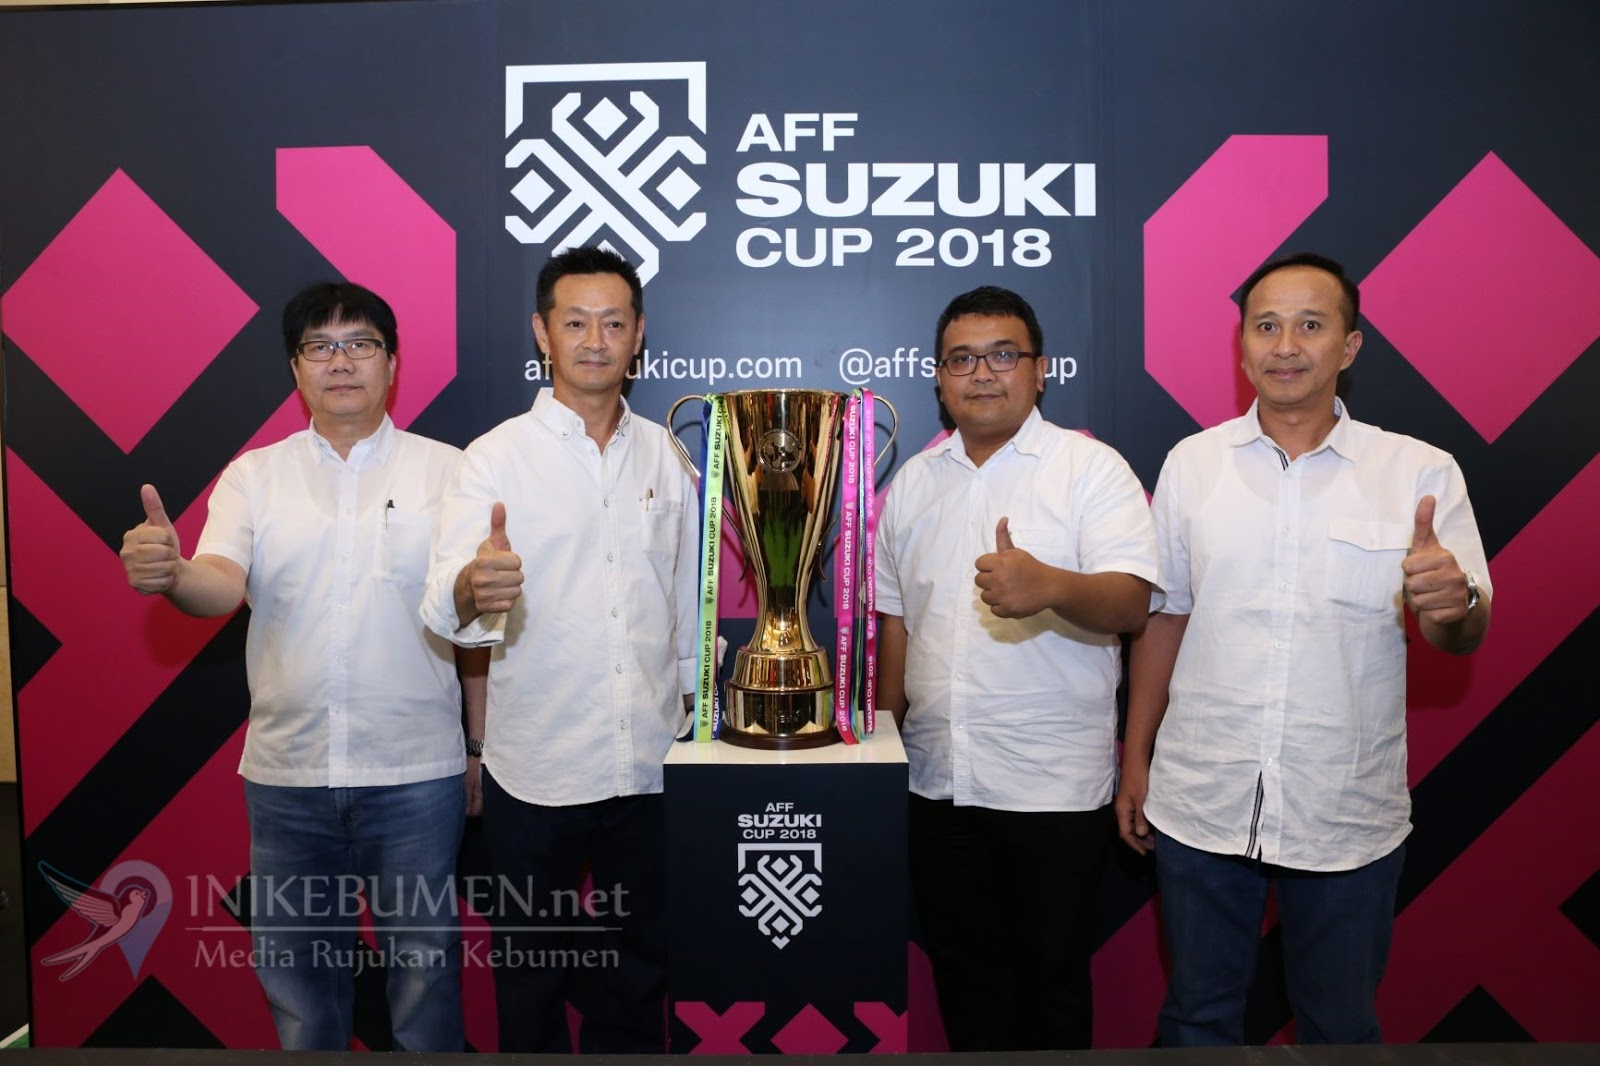 Suzuki All Out Dukung AFF Suzuki Cup 2018